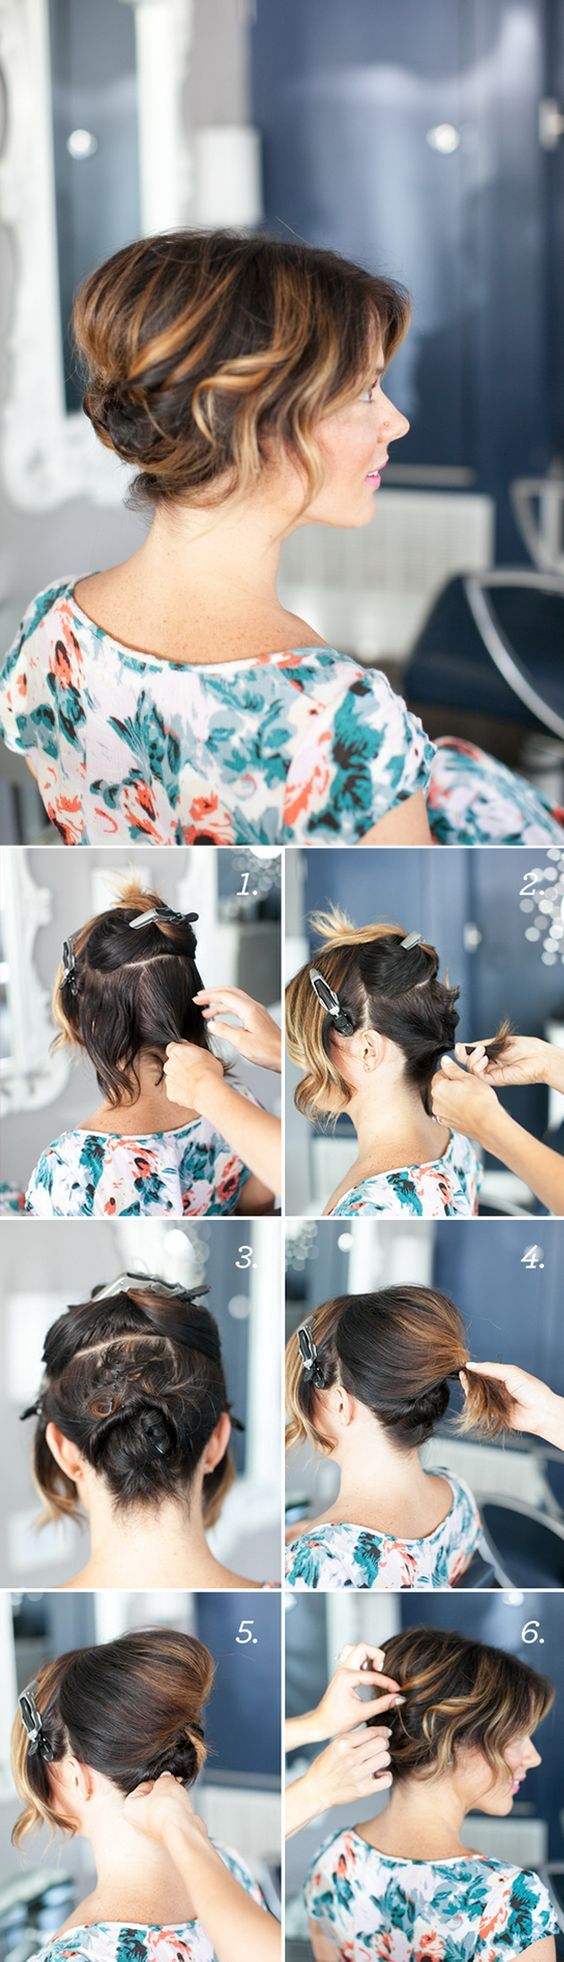 DIY Hairstyle // Super easy hairstyle tutorial you could try.